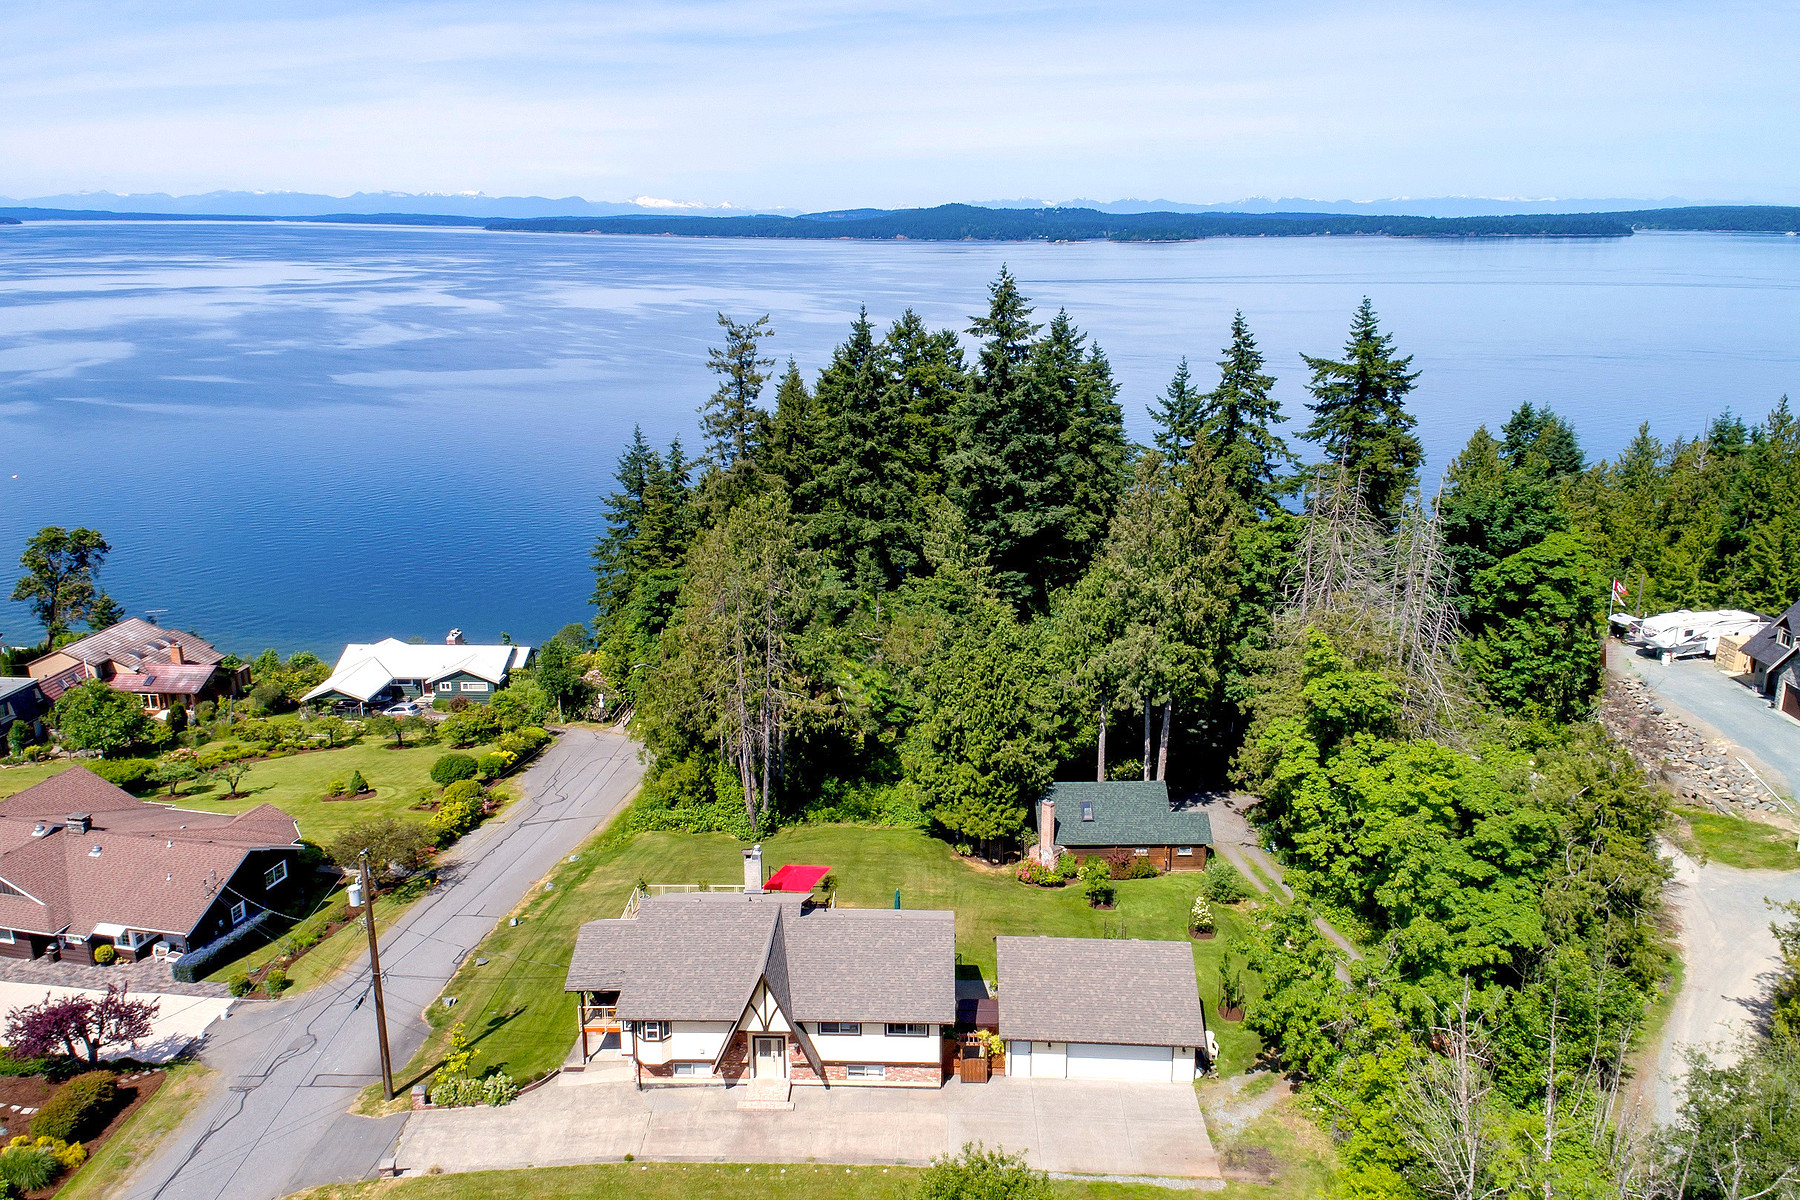 Tek Ailelik Ev için Satış at Low Bank Oceanfront 3192 Malcom Rd. Chemainus, British Columbia, V0R 1K2 Kanada